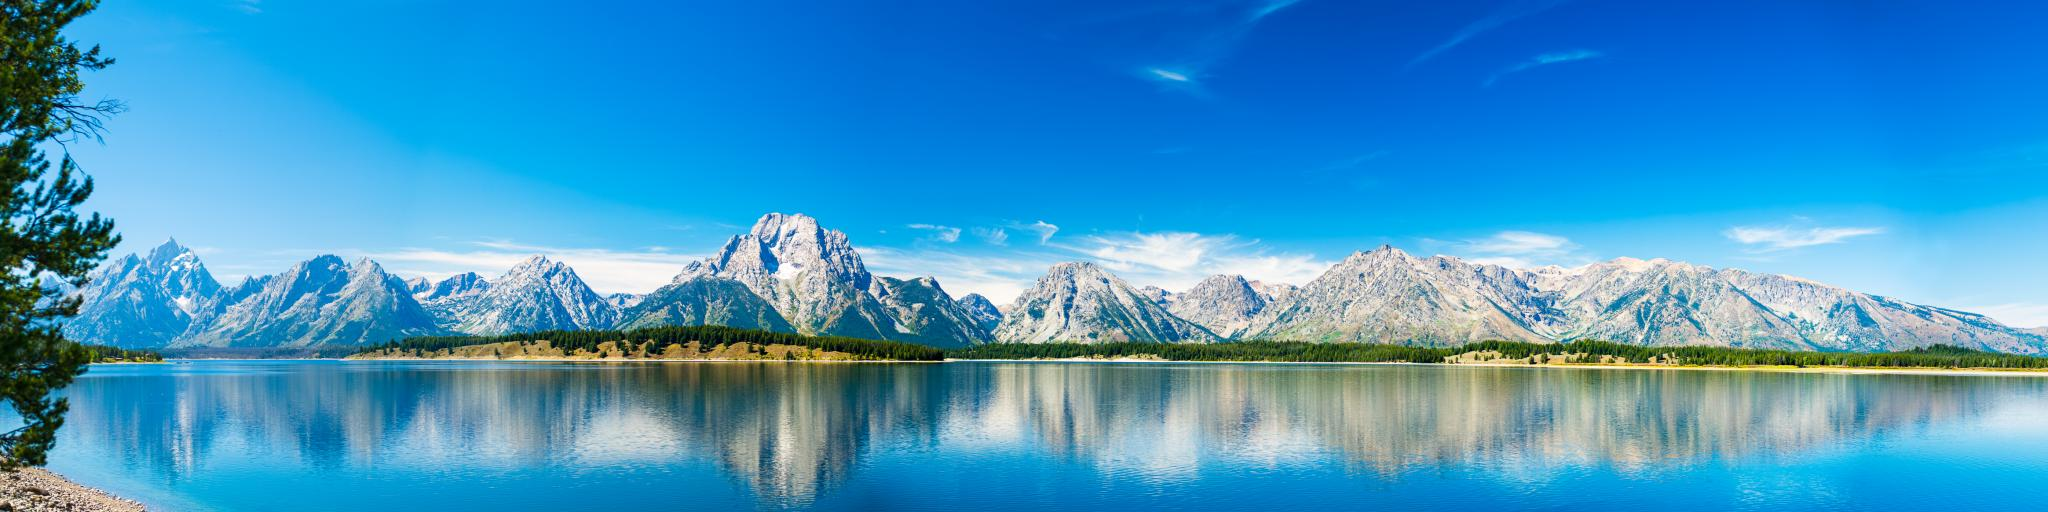 The Grand Teton National Park is a perfect destination for driving in Wyoming.